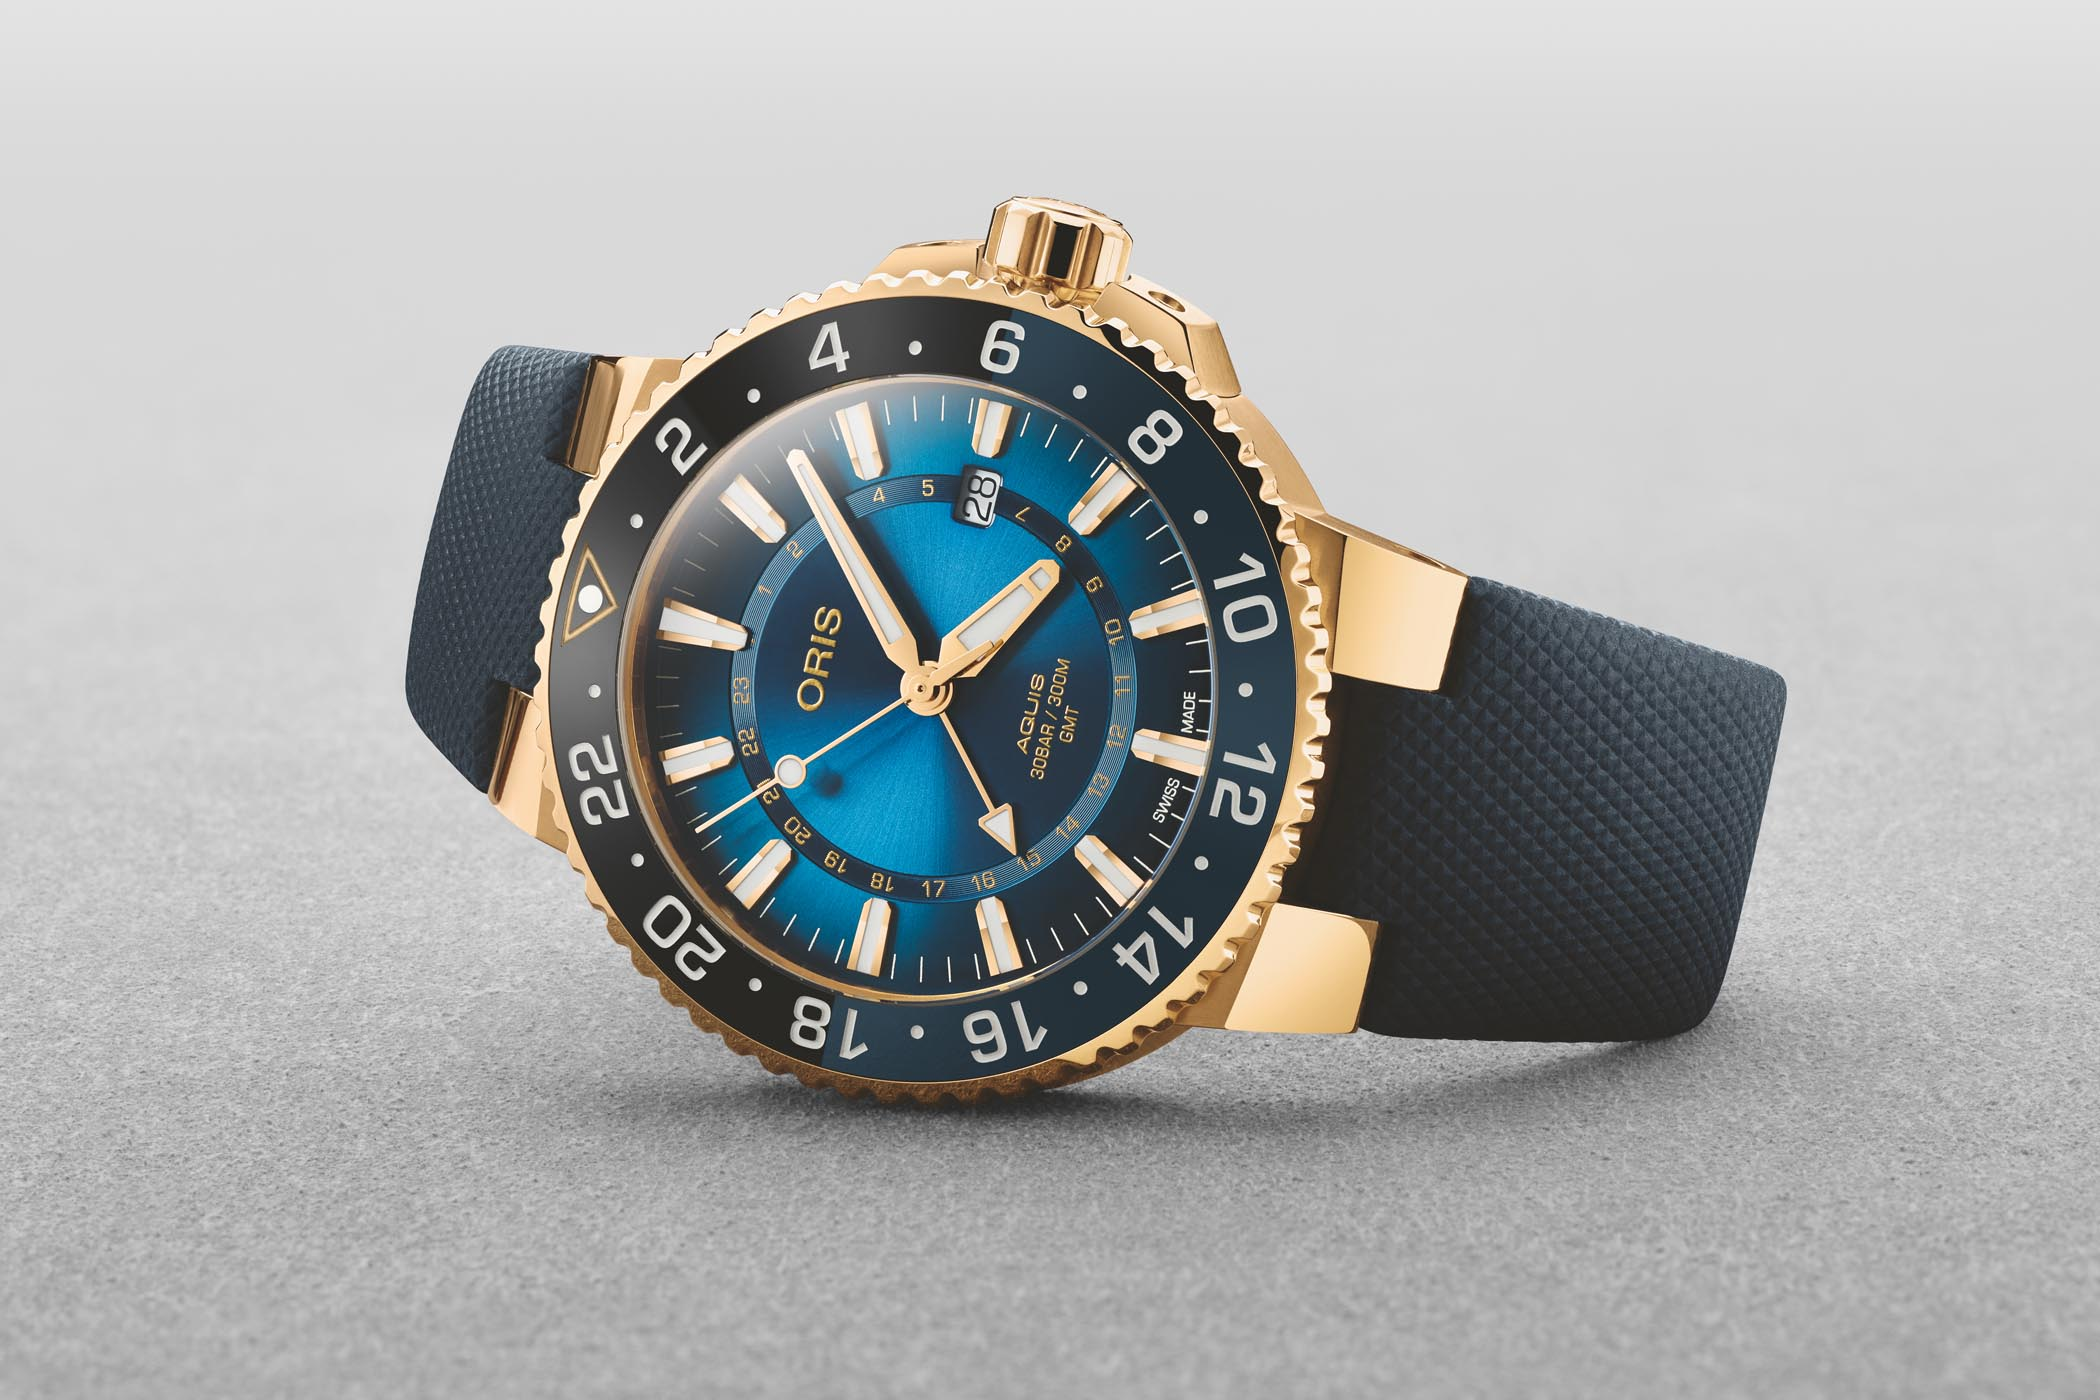 Oris Carysfort Reef Limited Edition Aquis GMT Yellow Gold